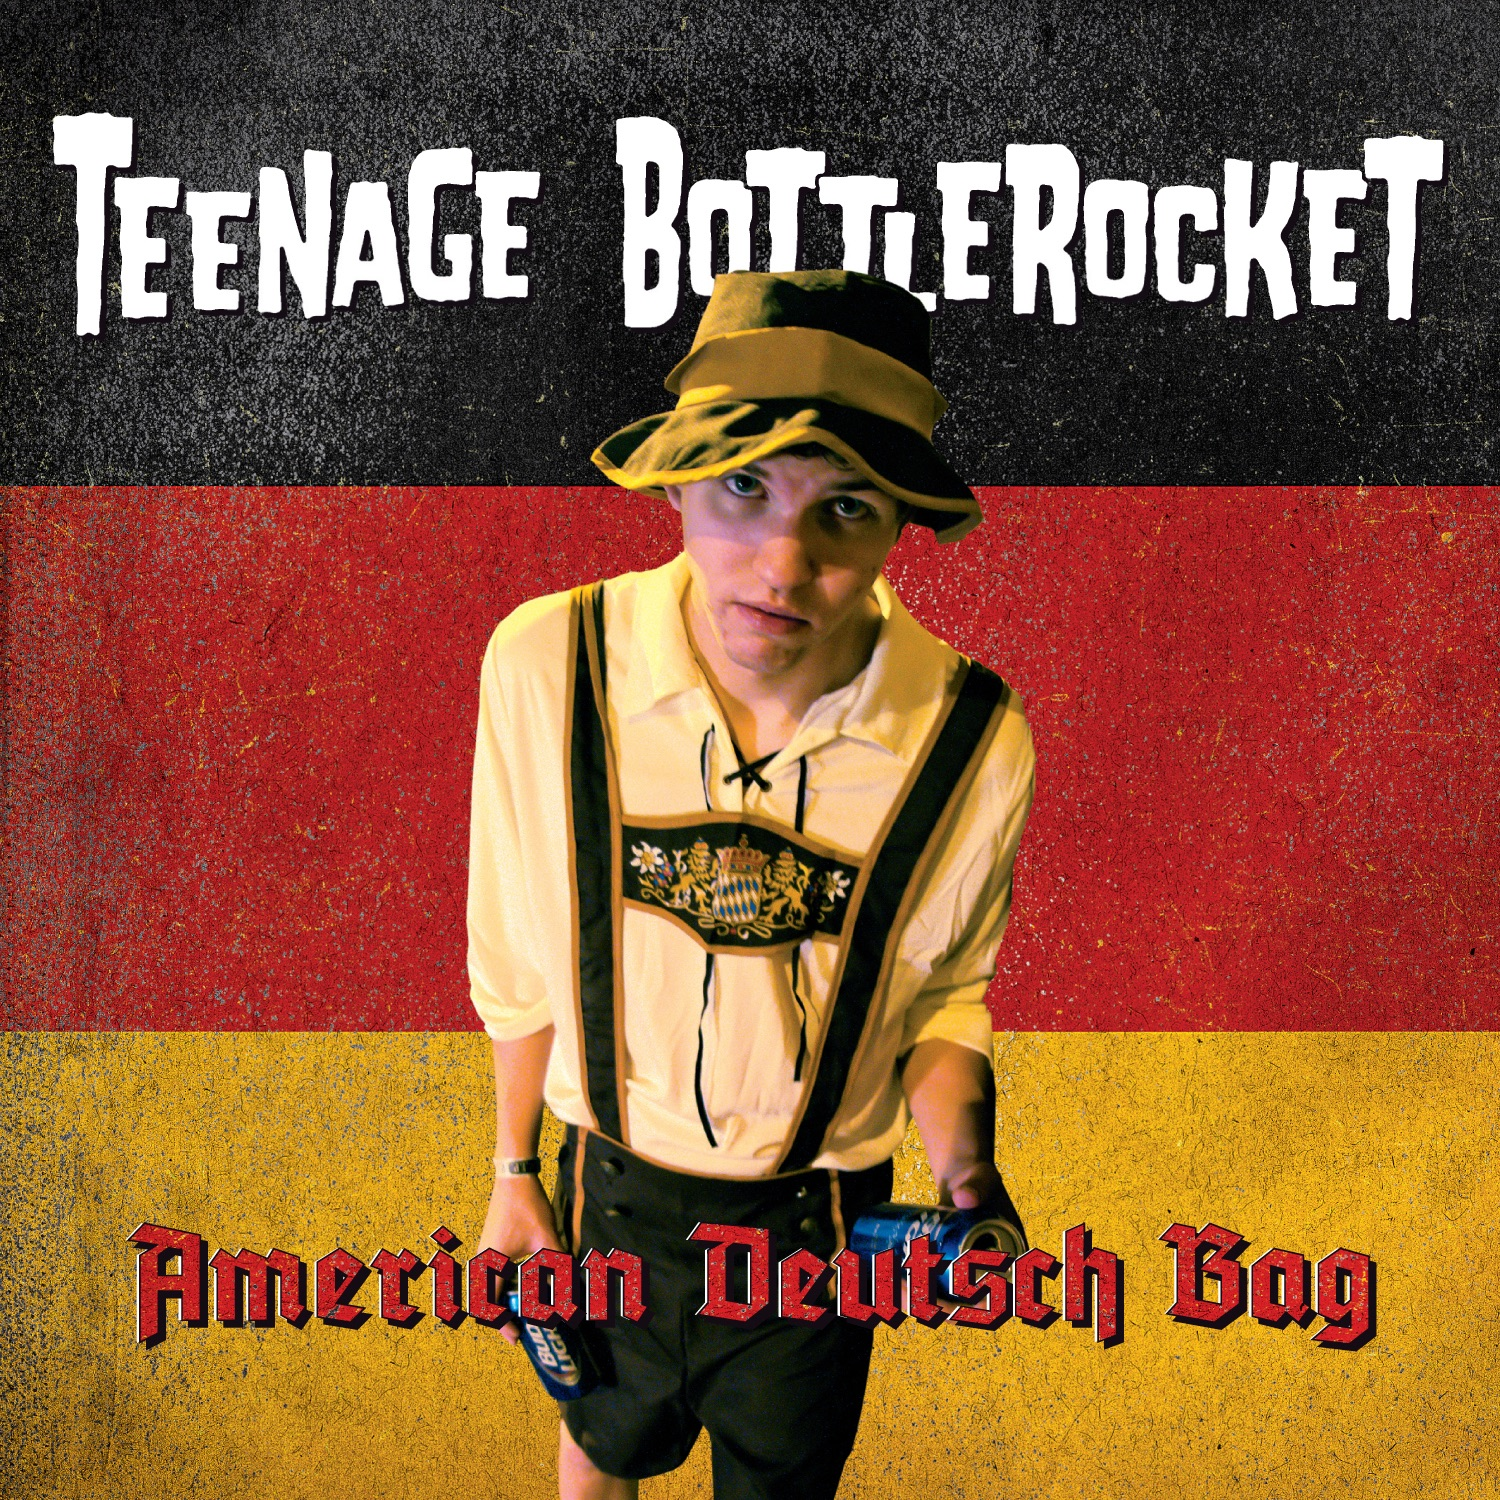 American Deutsch Bag - Single